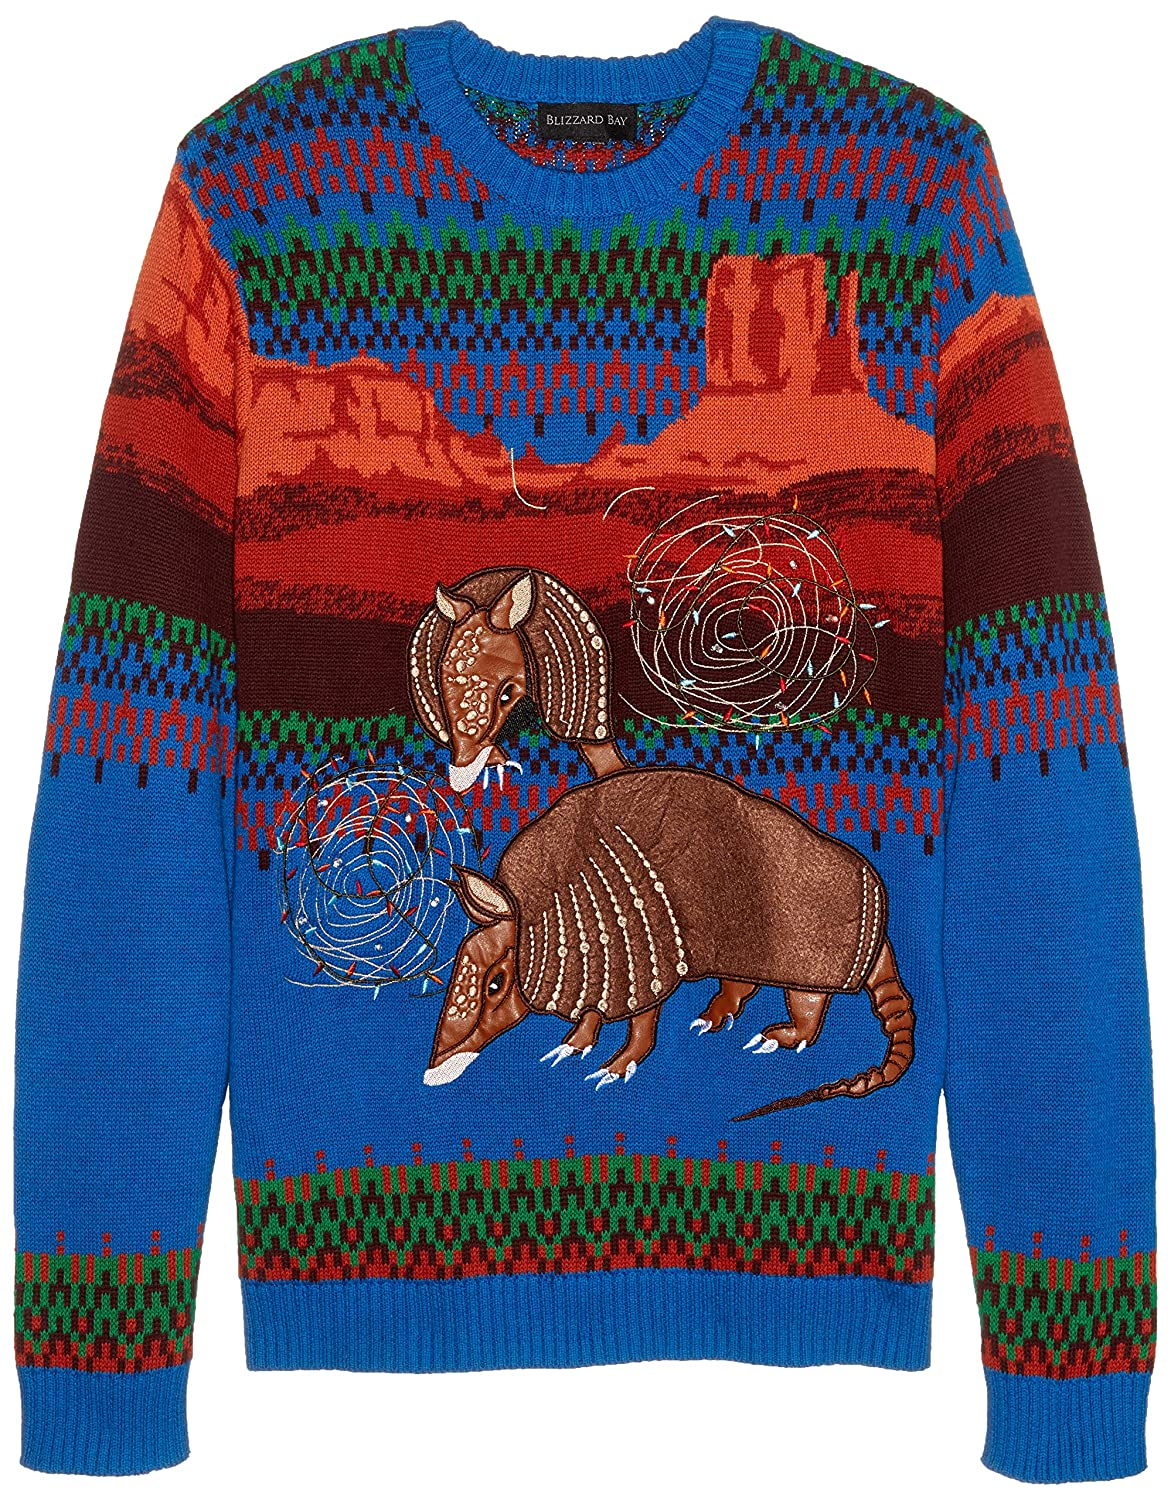 Blizzard Bay Men's Southwestern Themed Ugly Christmas Sweater Blizzard Bay Mens Apparel